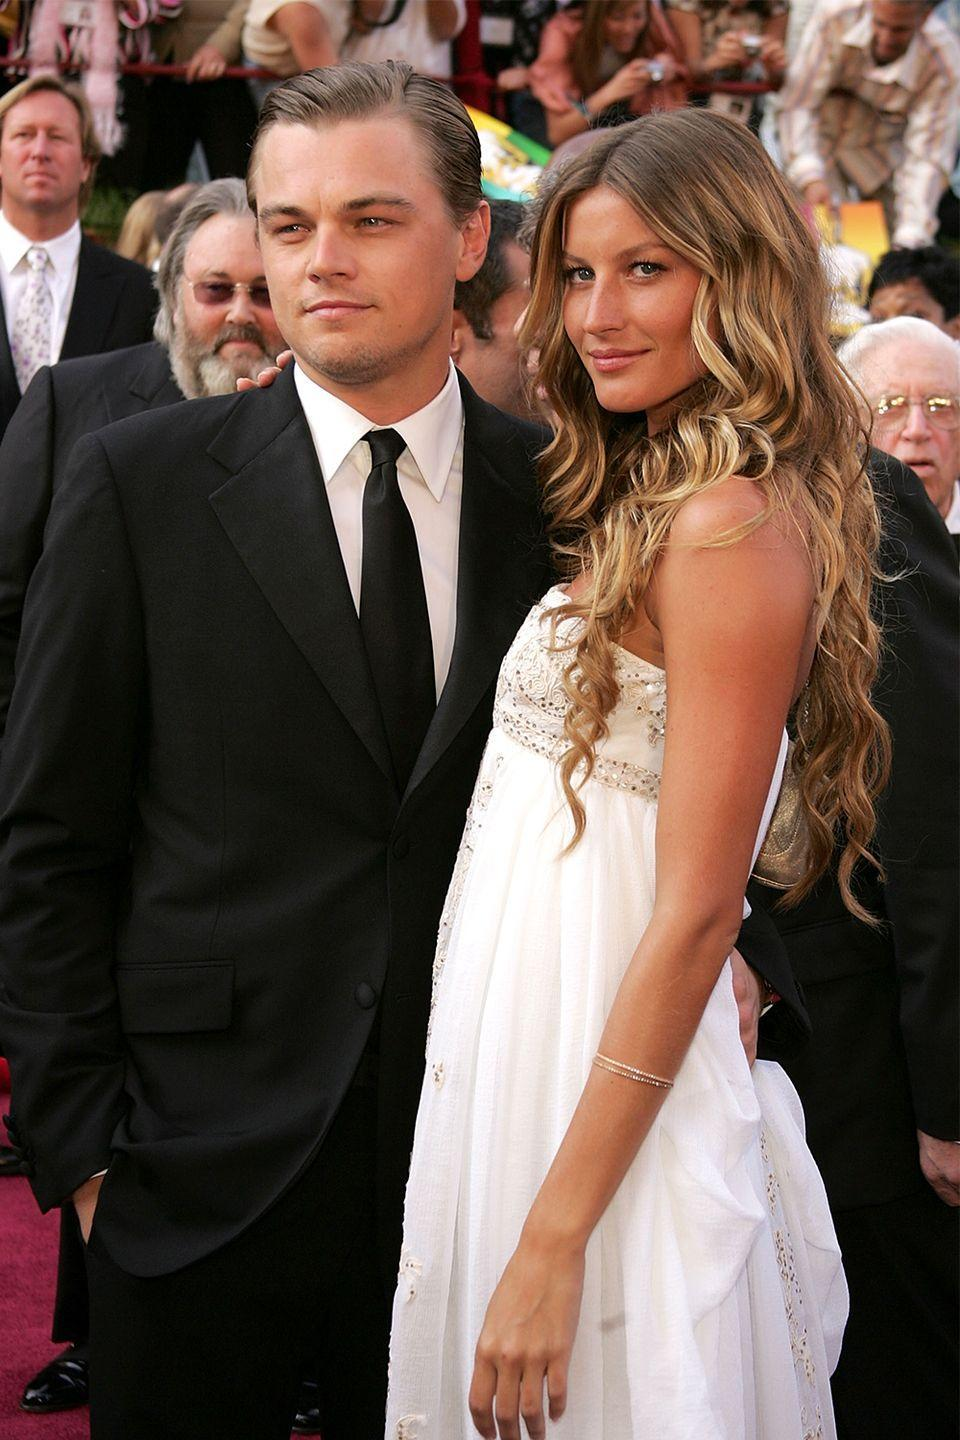 """<p>Before she was married to Tom Brady, Gisele Bündchen dated Leonardo DiCaprio—and it wasn't just a casual fling. The two were together for five years before splitting in 2005. Four years later, the model still had nothing but nice things to say about the <em>Titanic </em>actor. </p><p>""""We were just not meant to be boyfriend and girlfriend, but I respect him enormously, and I wish him nothing but the best,"""" she told <em><a href=""""http://www.accessonline.com/articles/gisele-bundchen-talks-husband-tom-brady-loving-his-son-like-her-own-69344/"""" rel=""""nofollow noopener"""" target=""""_blank"""" data-ylk=""""slk:Access Hollywood"""" class=""""link rapid-noclick-resp"""">Access Hollywood</a></em>.</p>"""